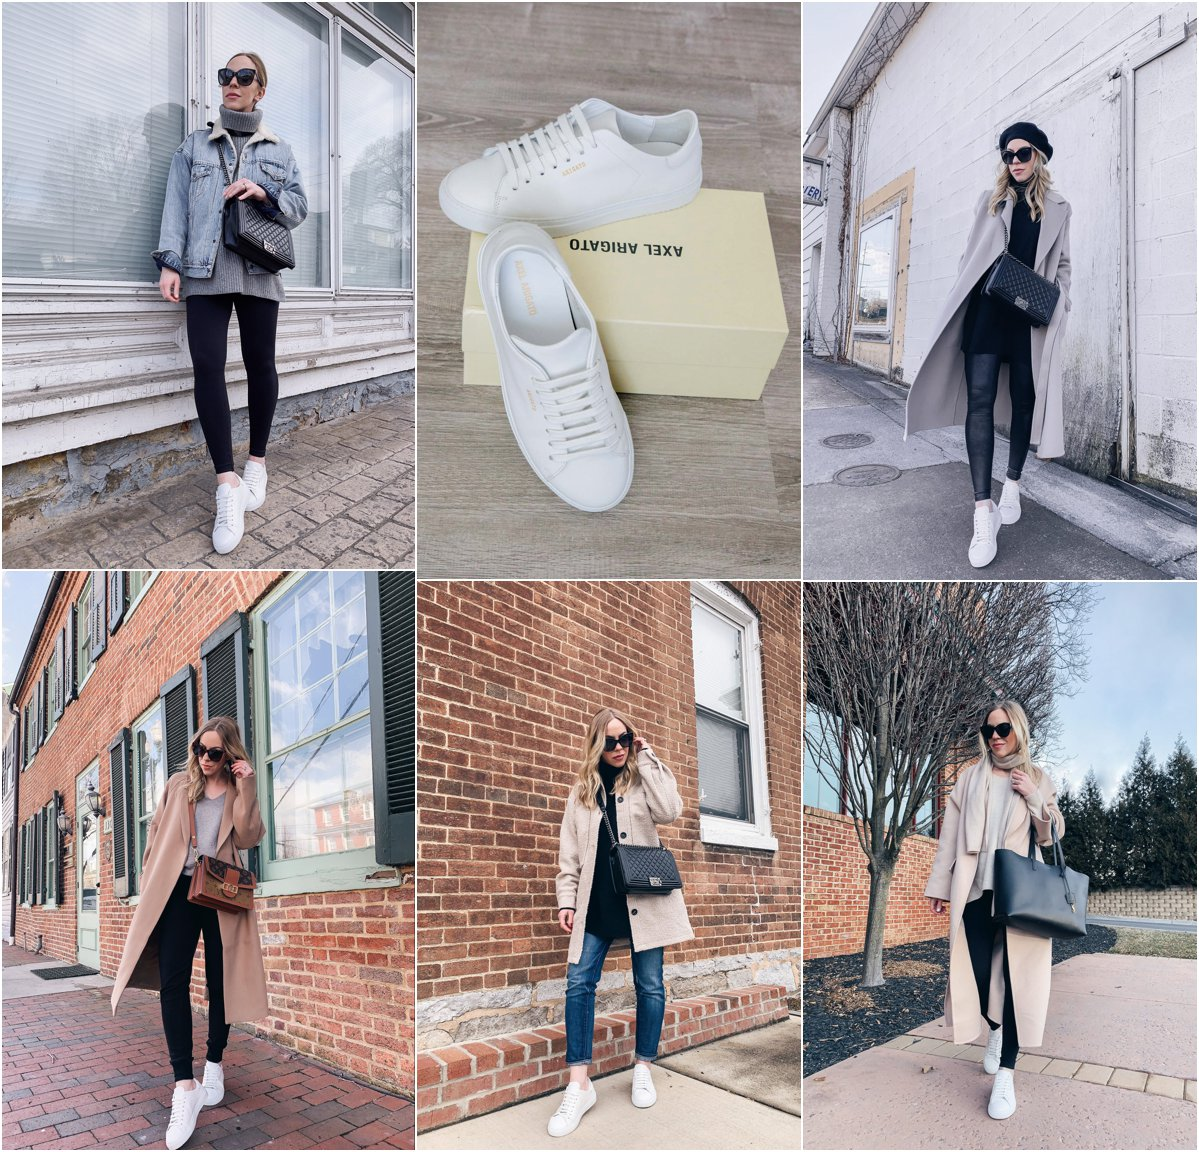 Meagan Brandon fashion blogger of Meagan's Moda reviews Axel Arigato clean 90 white sneakers, best classic white sneakers for women